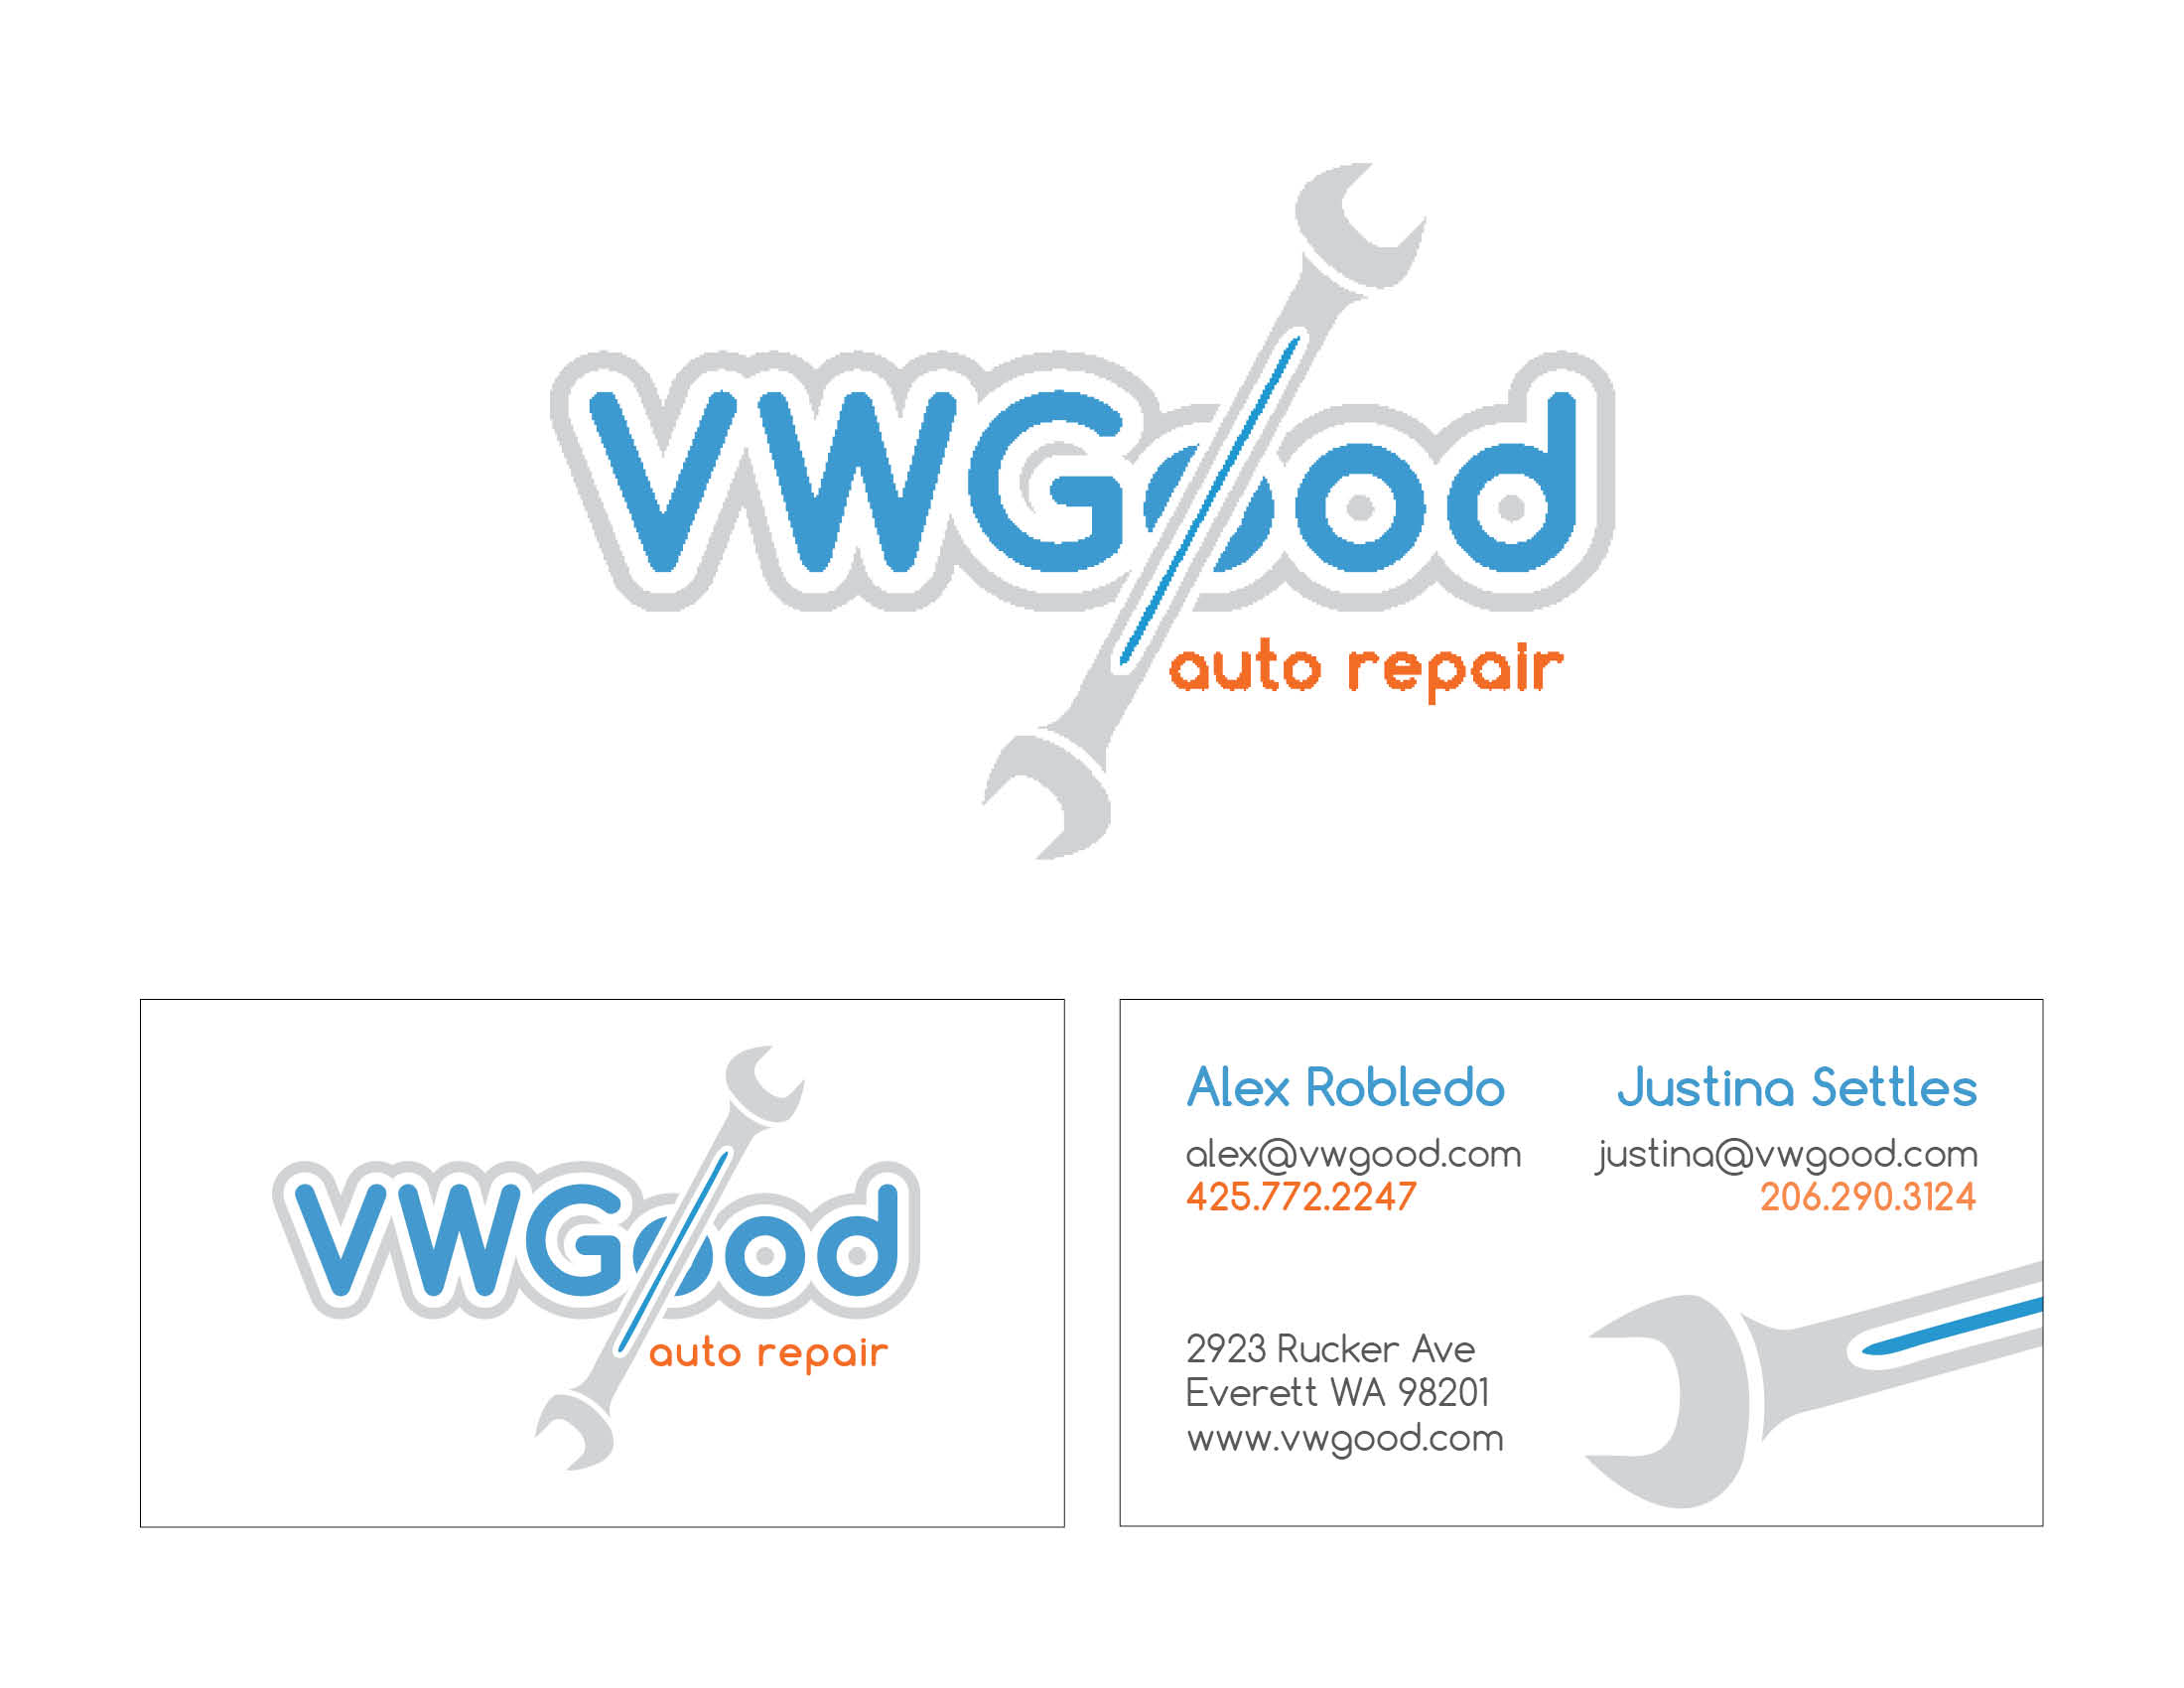 VW God logo & business card